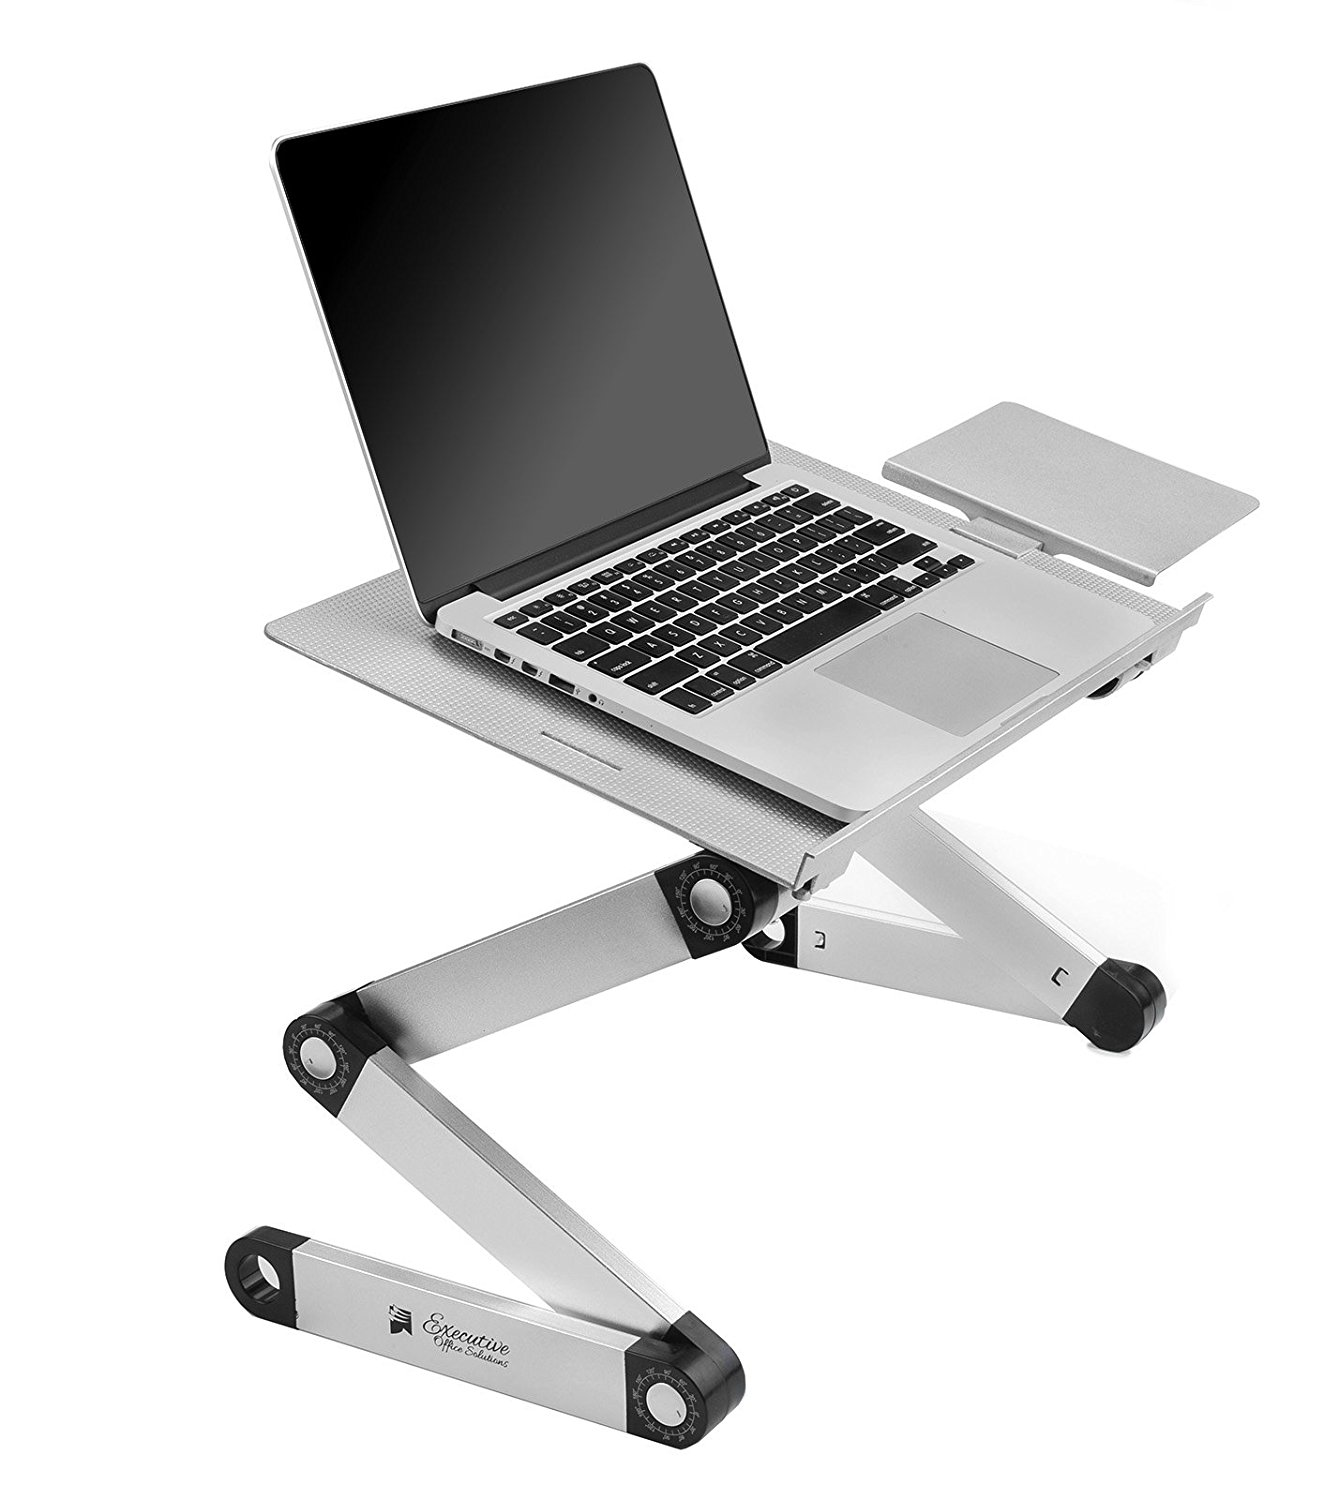 image of a laptop stand